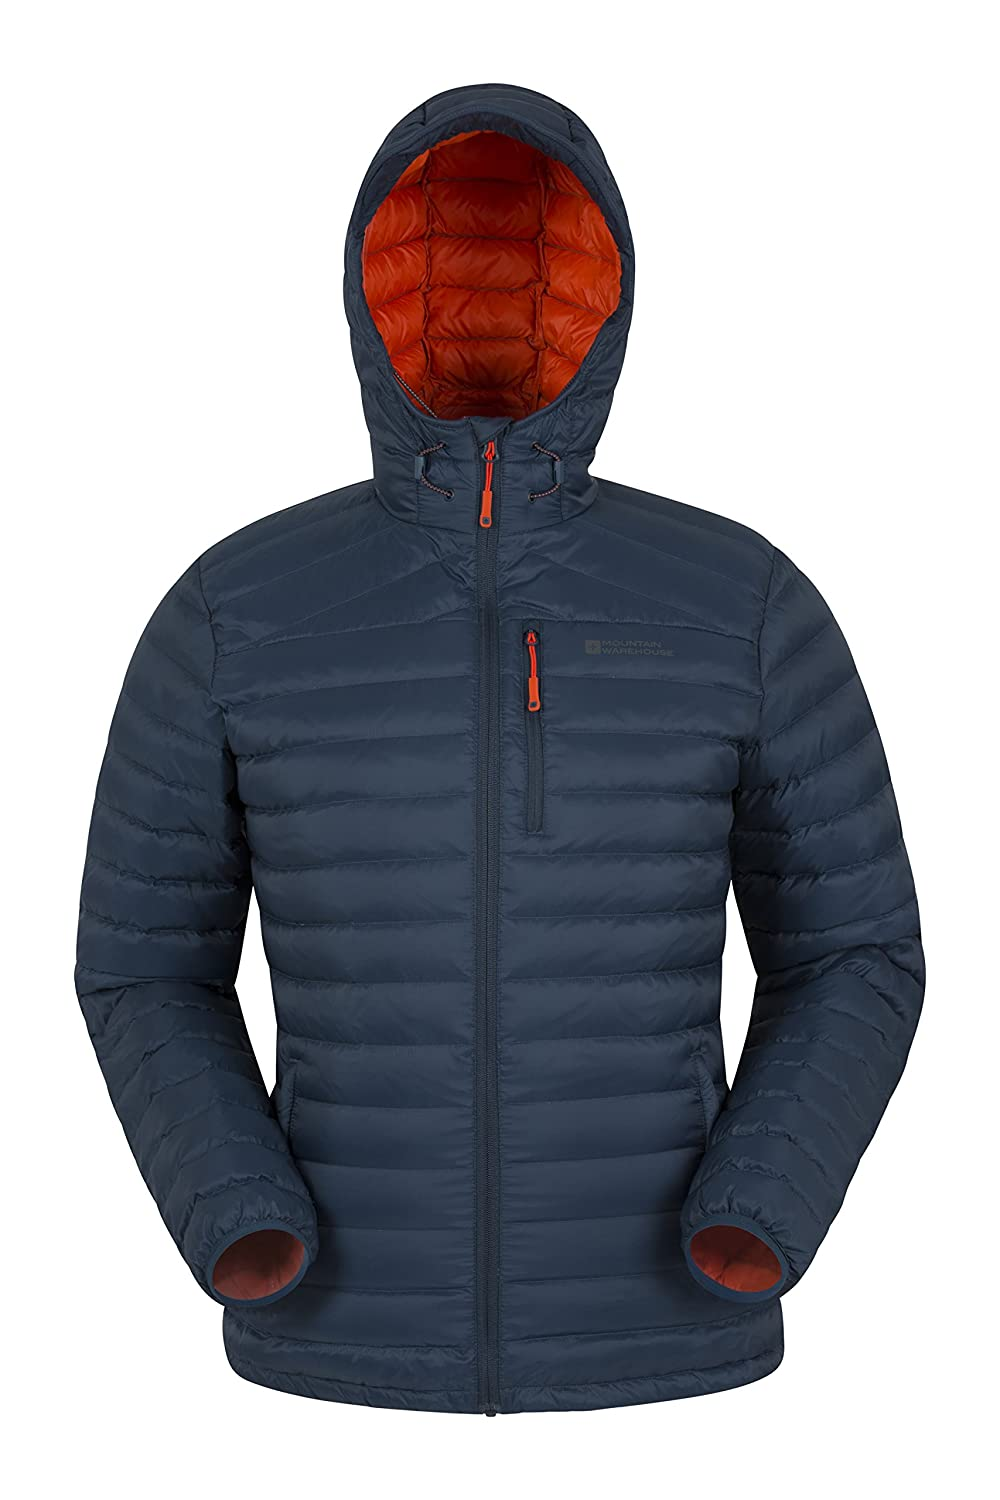 Mountain Warehouse Henry Mens Down Padded Jacket - Light Rain Coat